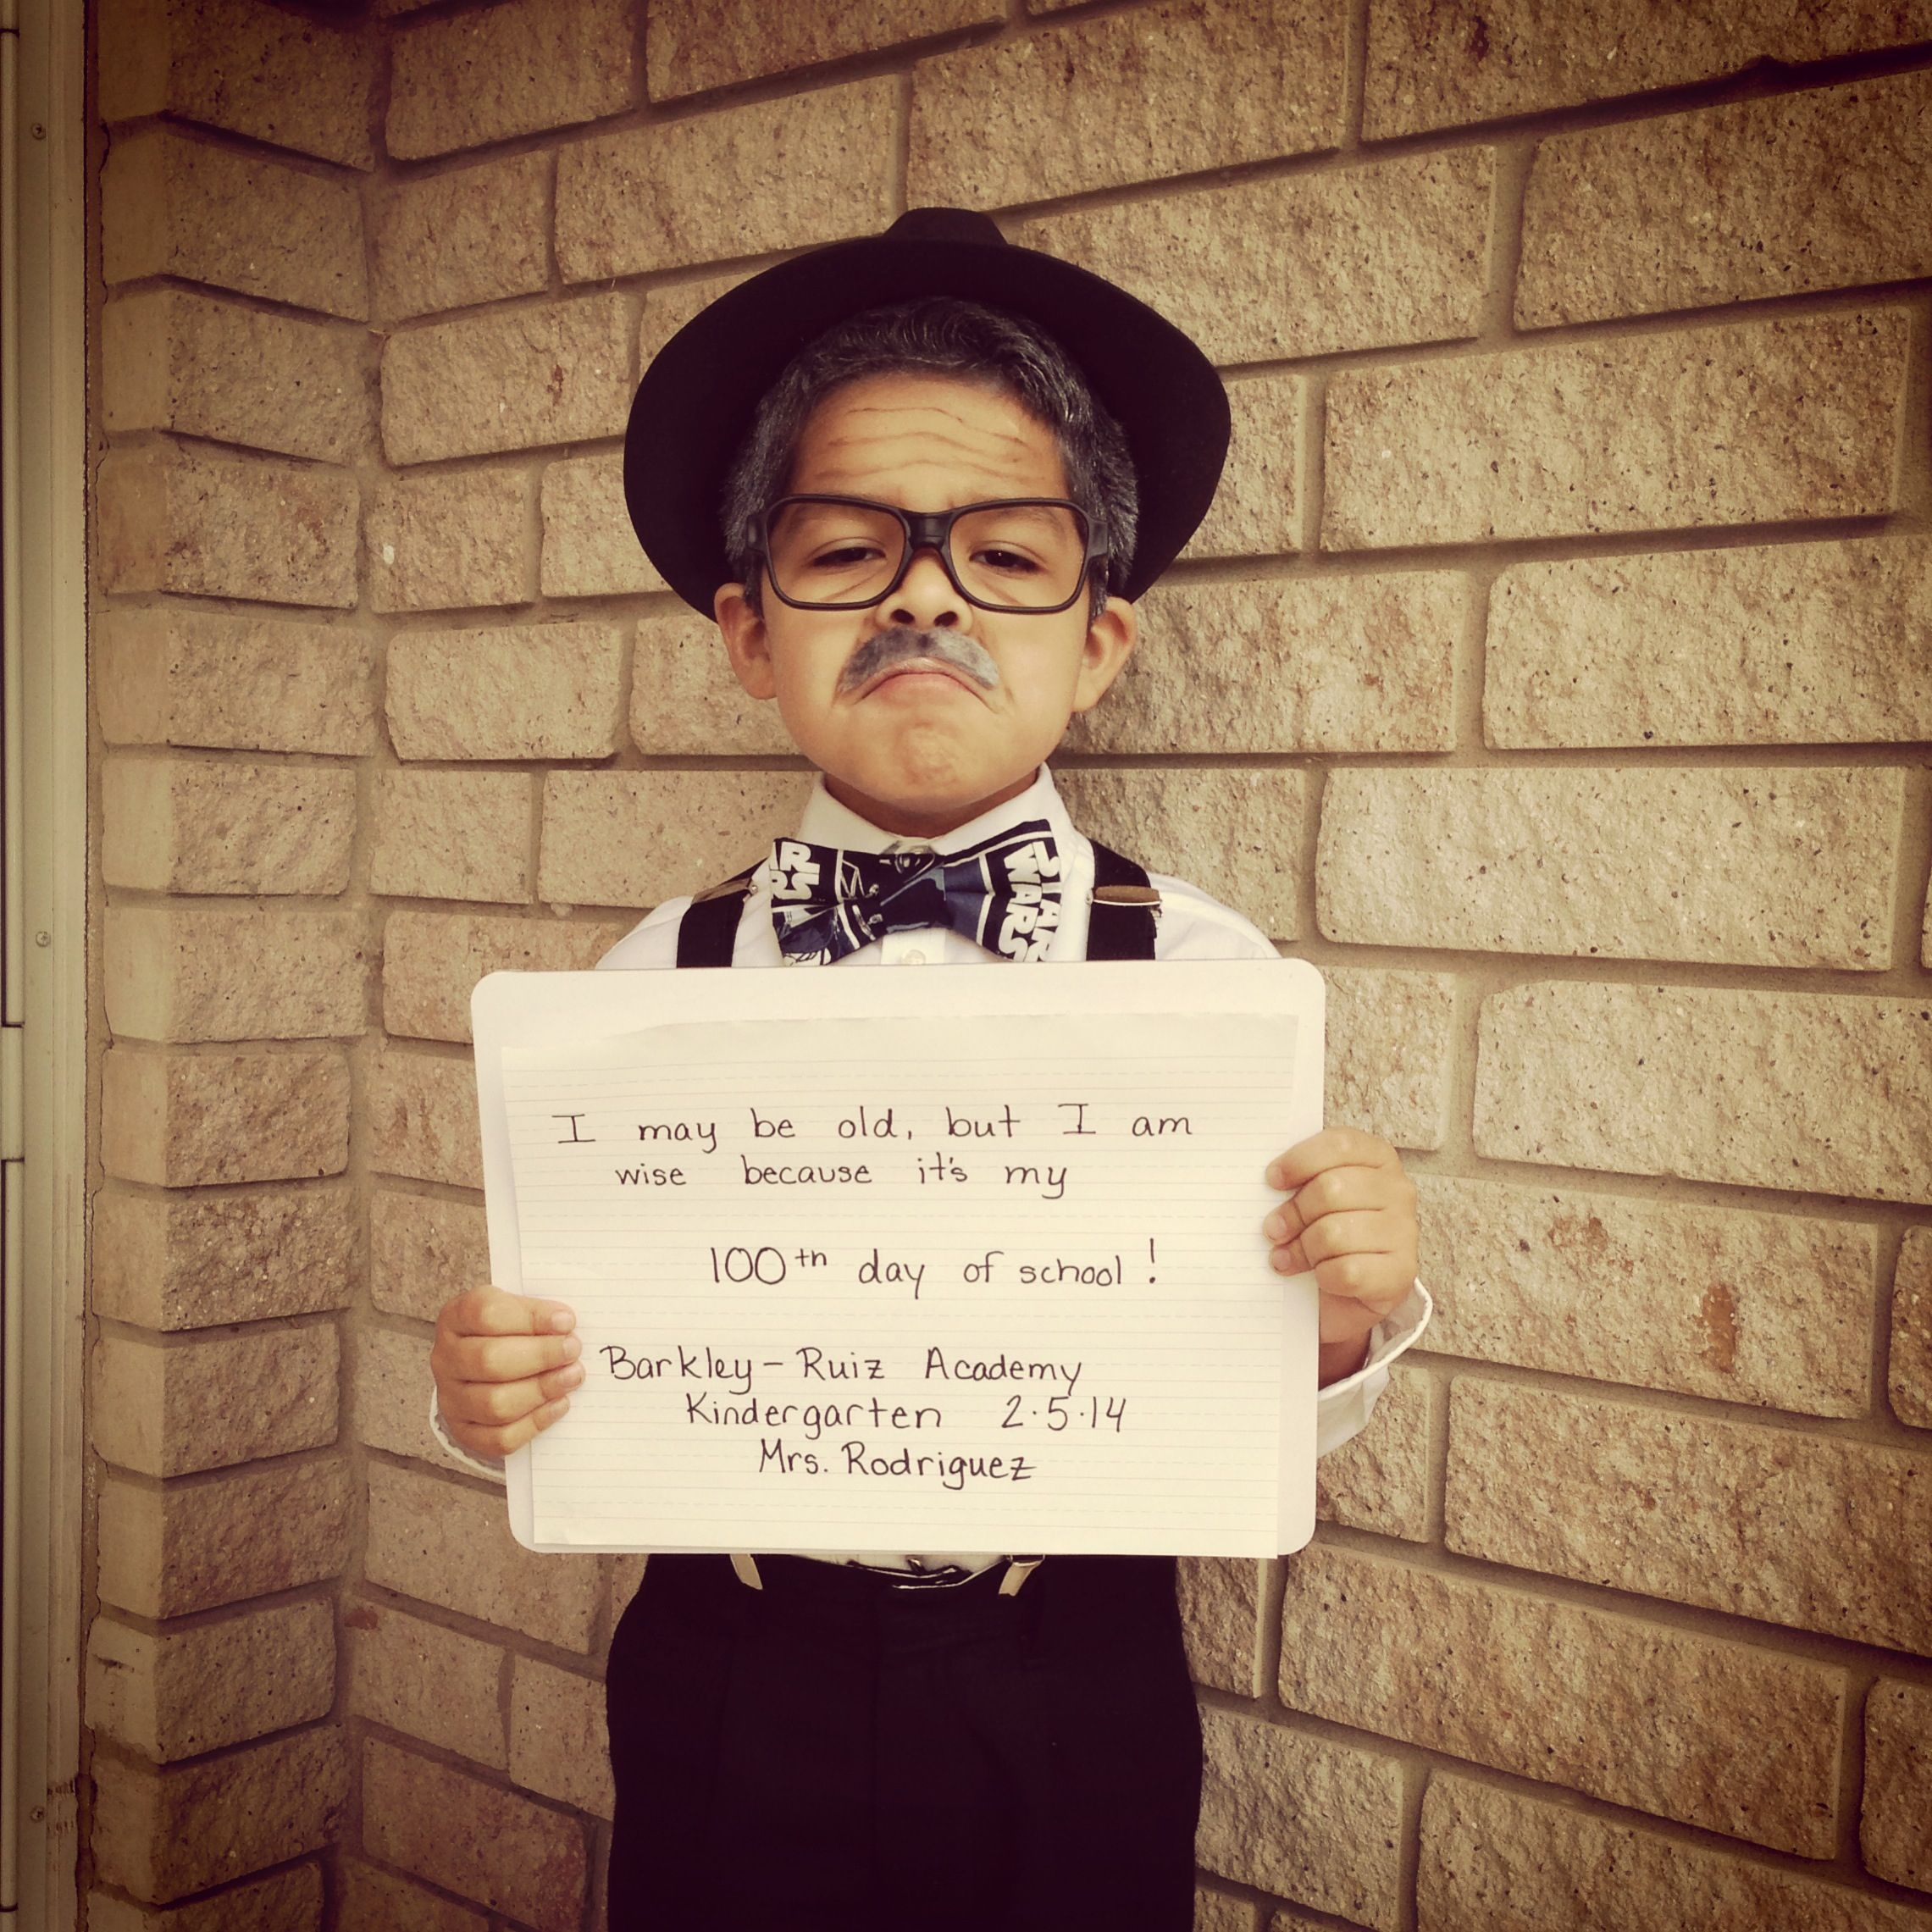 100th day of school Dress like you are 100 years old Fedora hat